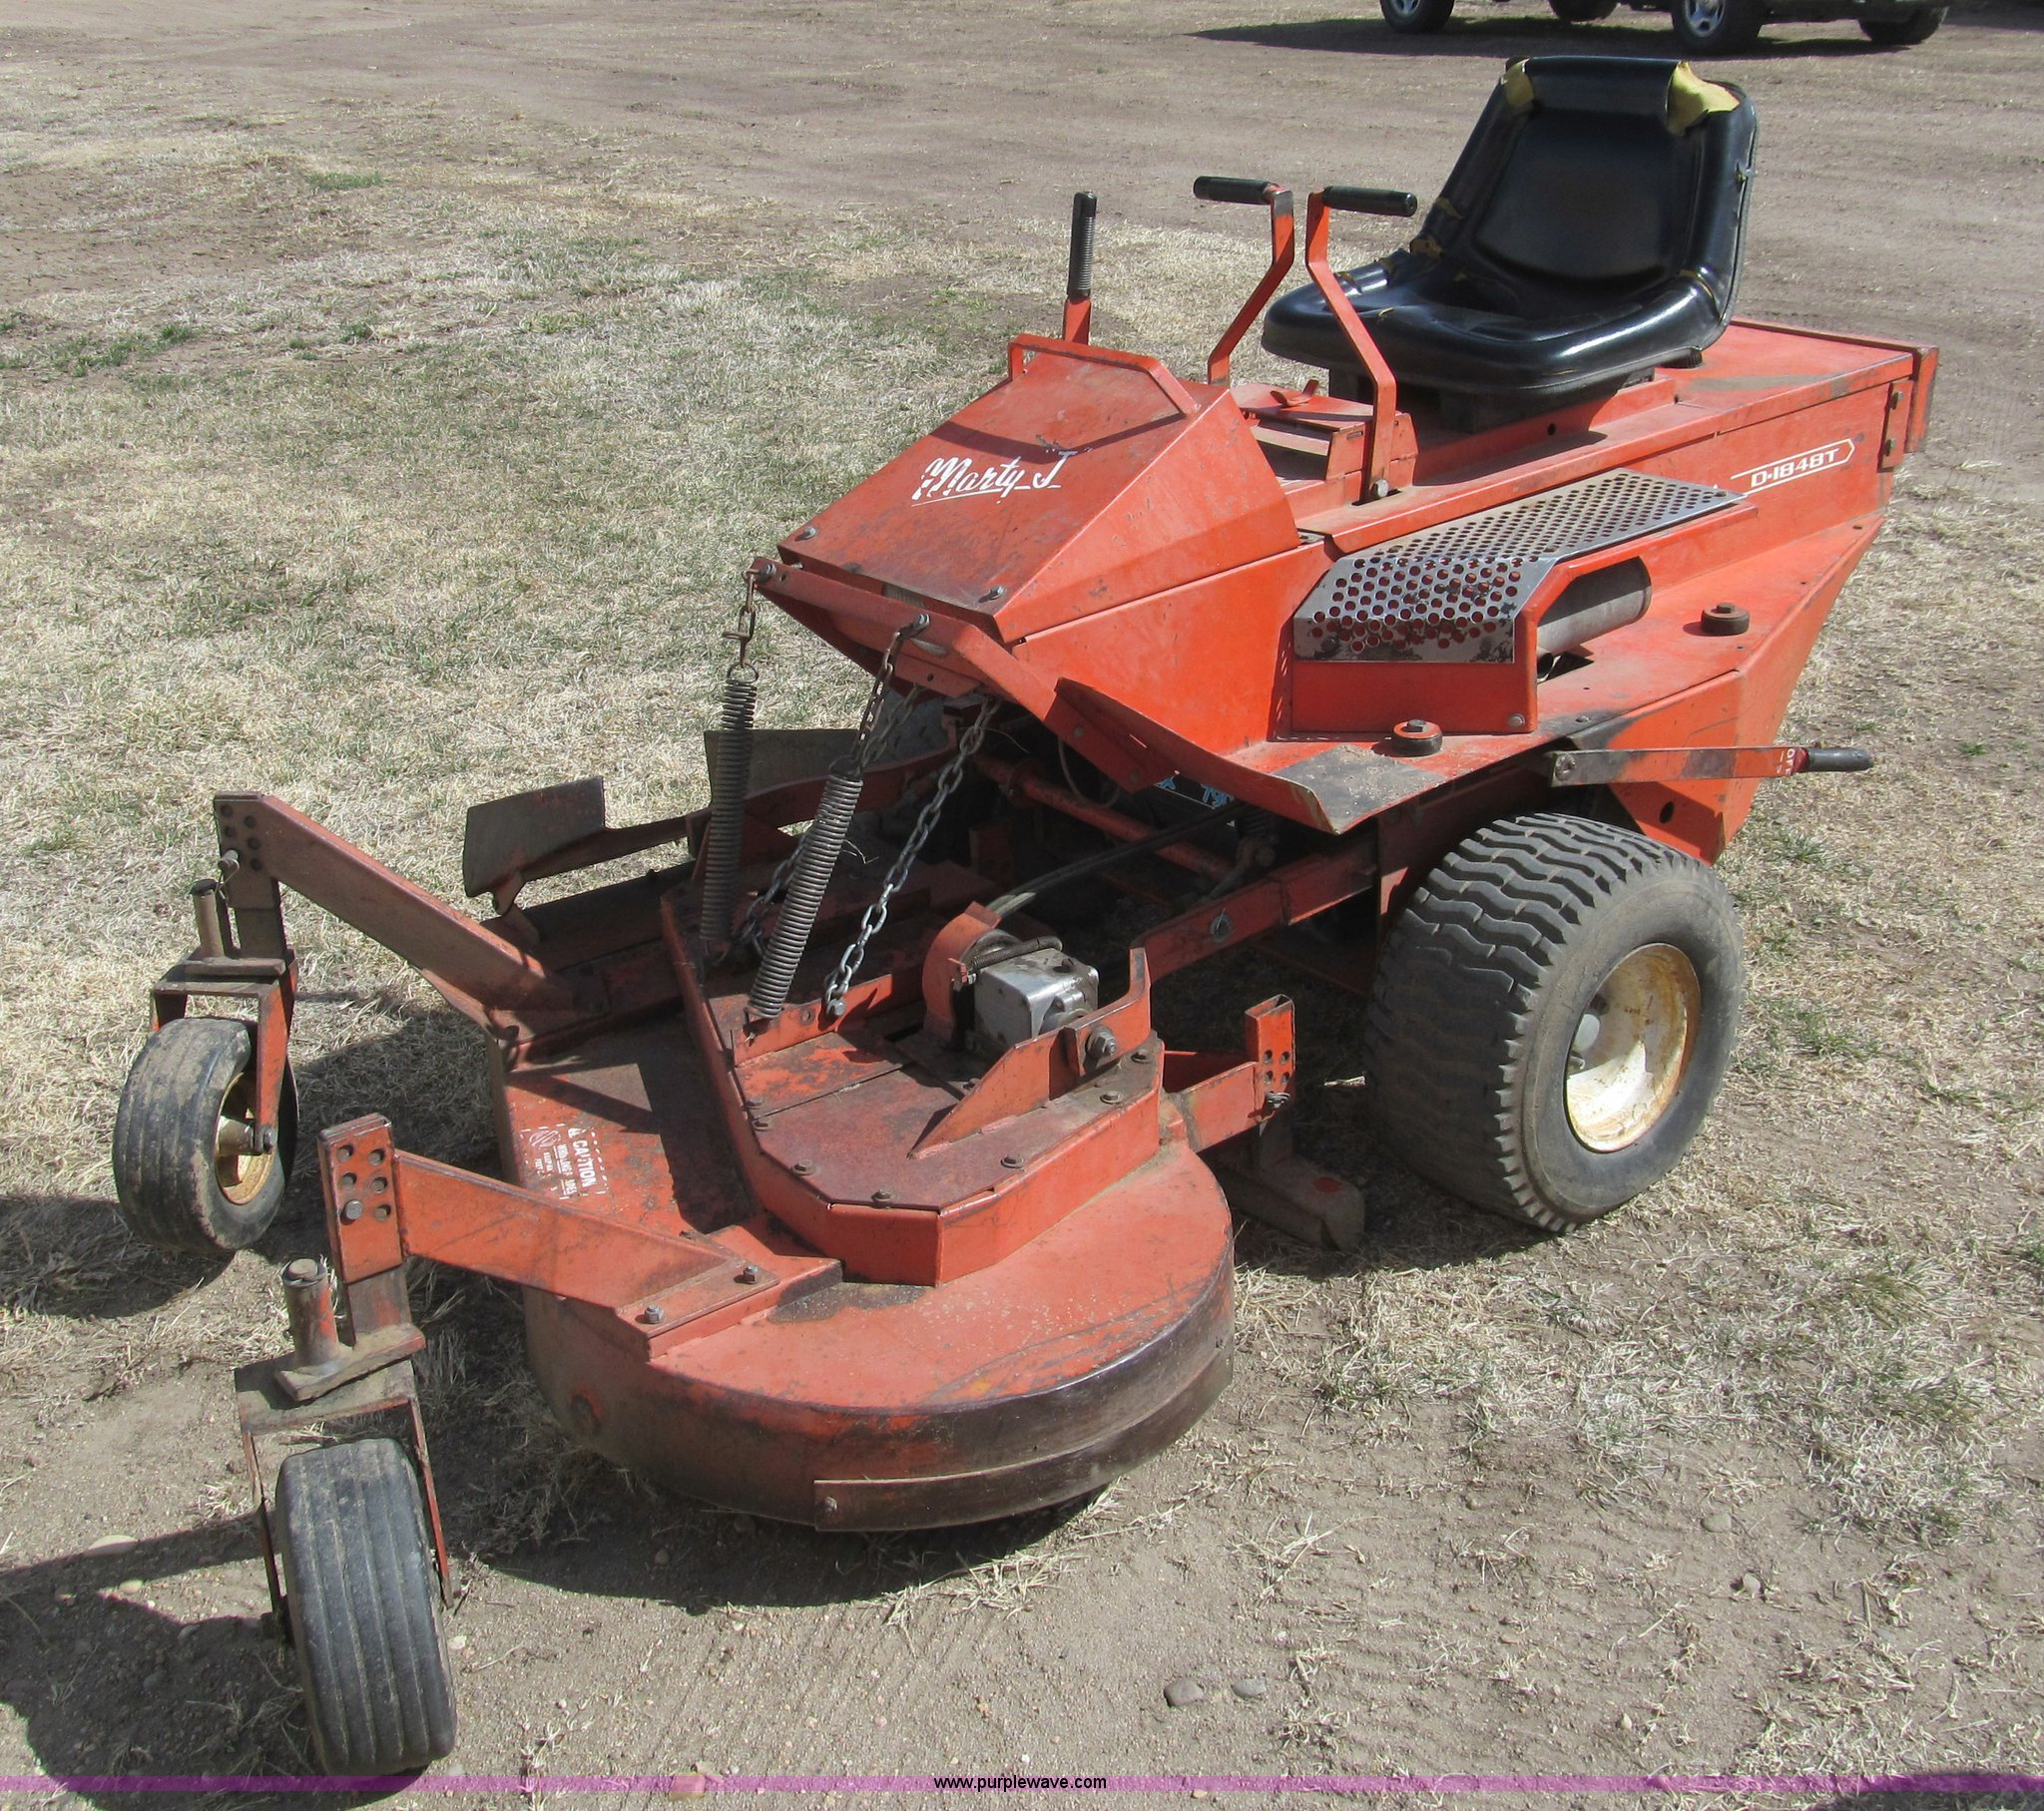 deines marty j d1848t lawn mower item aq9937 sold april rh purplewave com Deines Mowers Dealers deines mower manual